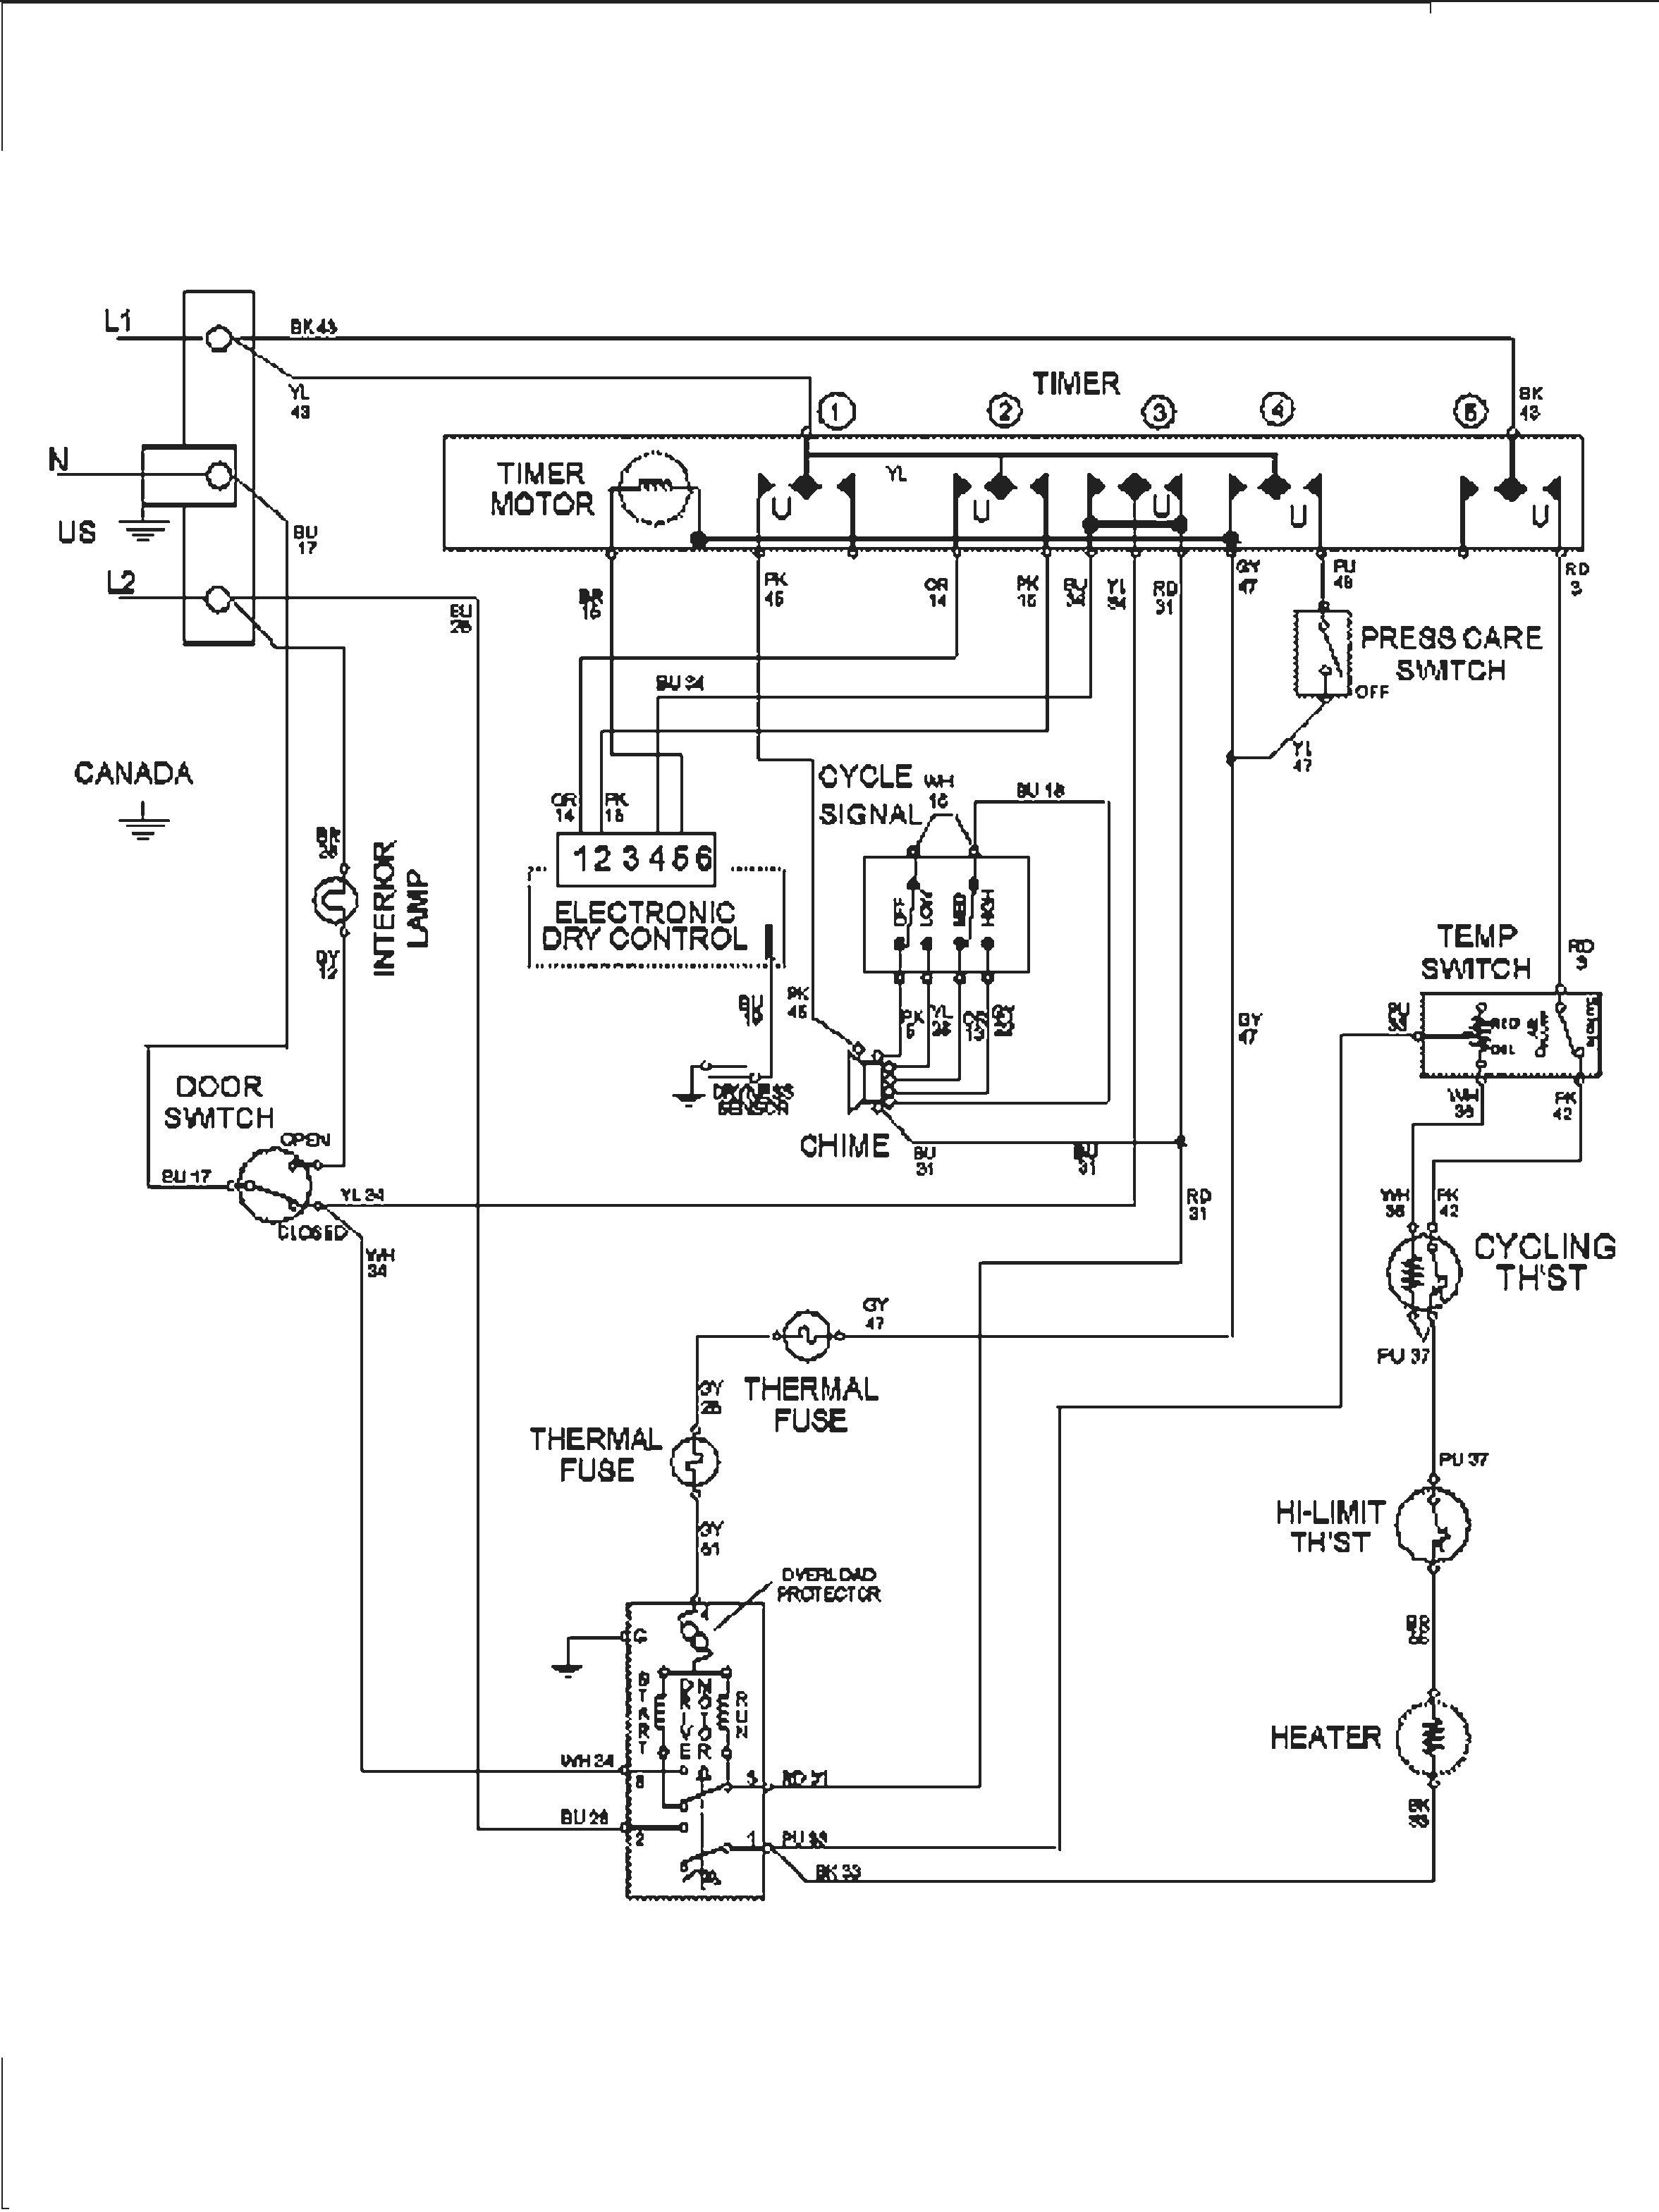 wiring diagram for whirlpool duet dryer heating element 2001 saturn sl2 starter on